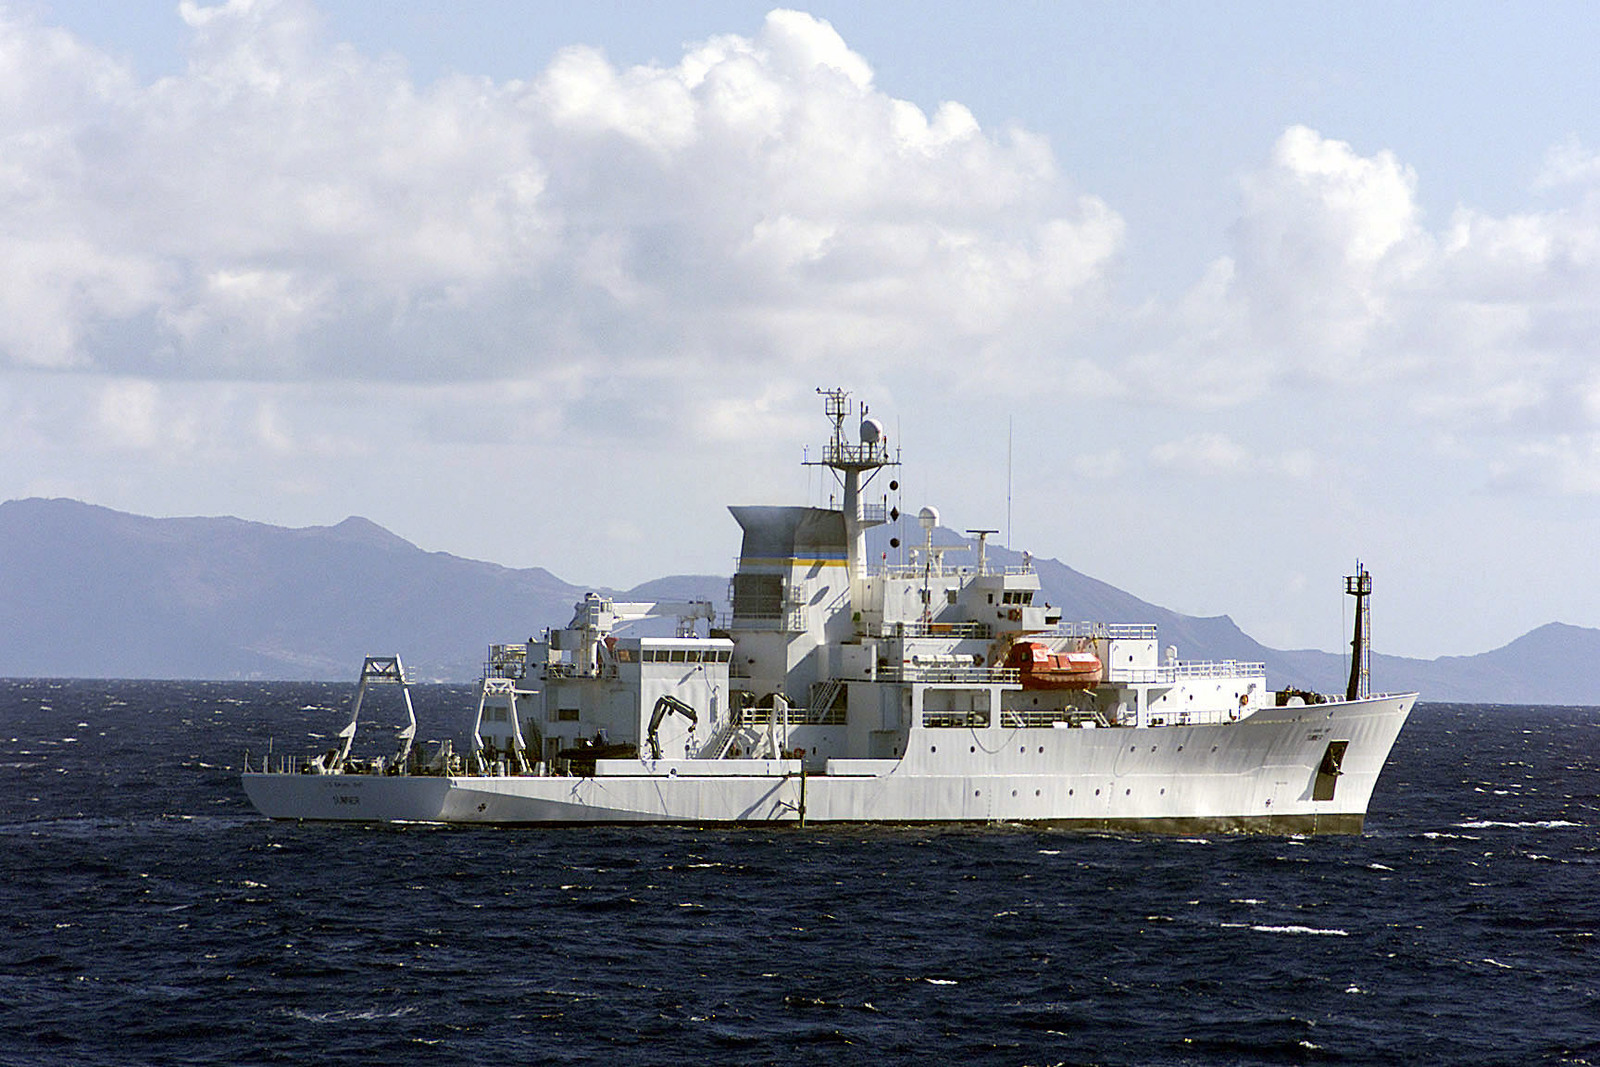 A starboard side view of the PATHFINDER CLASS: SURVEYING SHIP USNS SUMNER (T-AGS 61), underway off the coast of Hawaii (HI), during recovery operations for the Japanese fishing vessel Ehime Maru